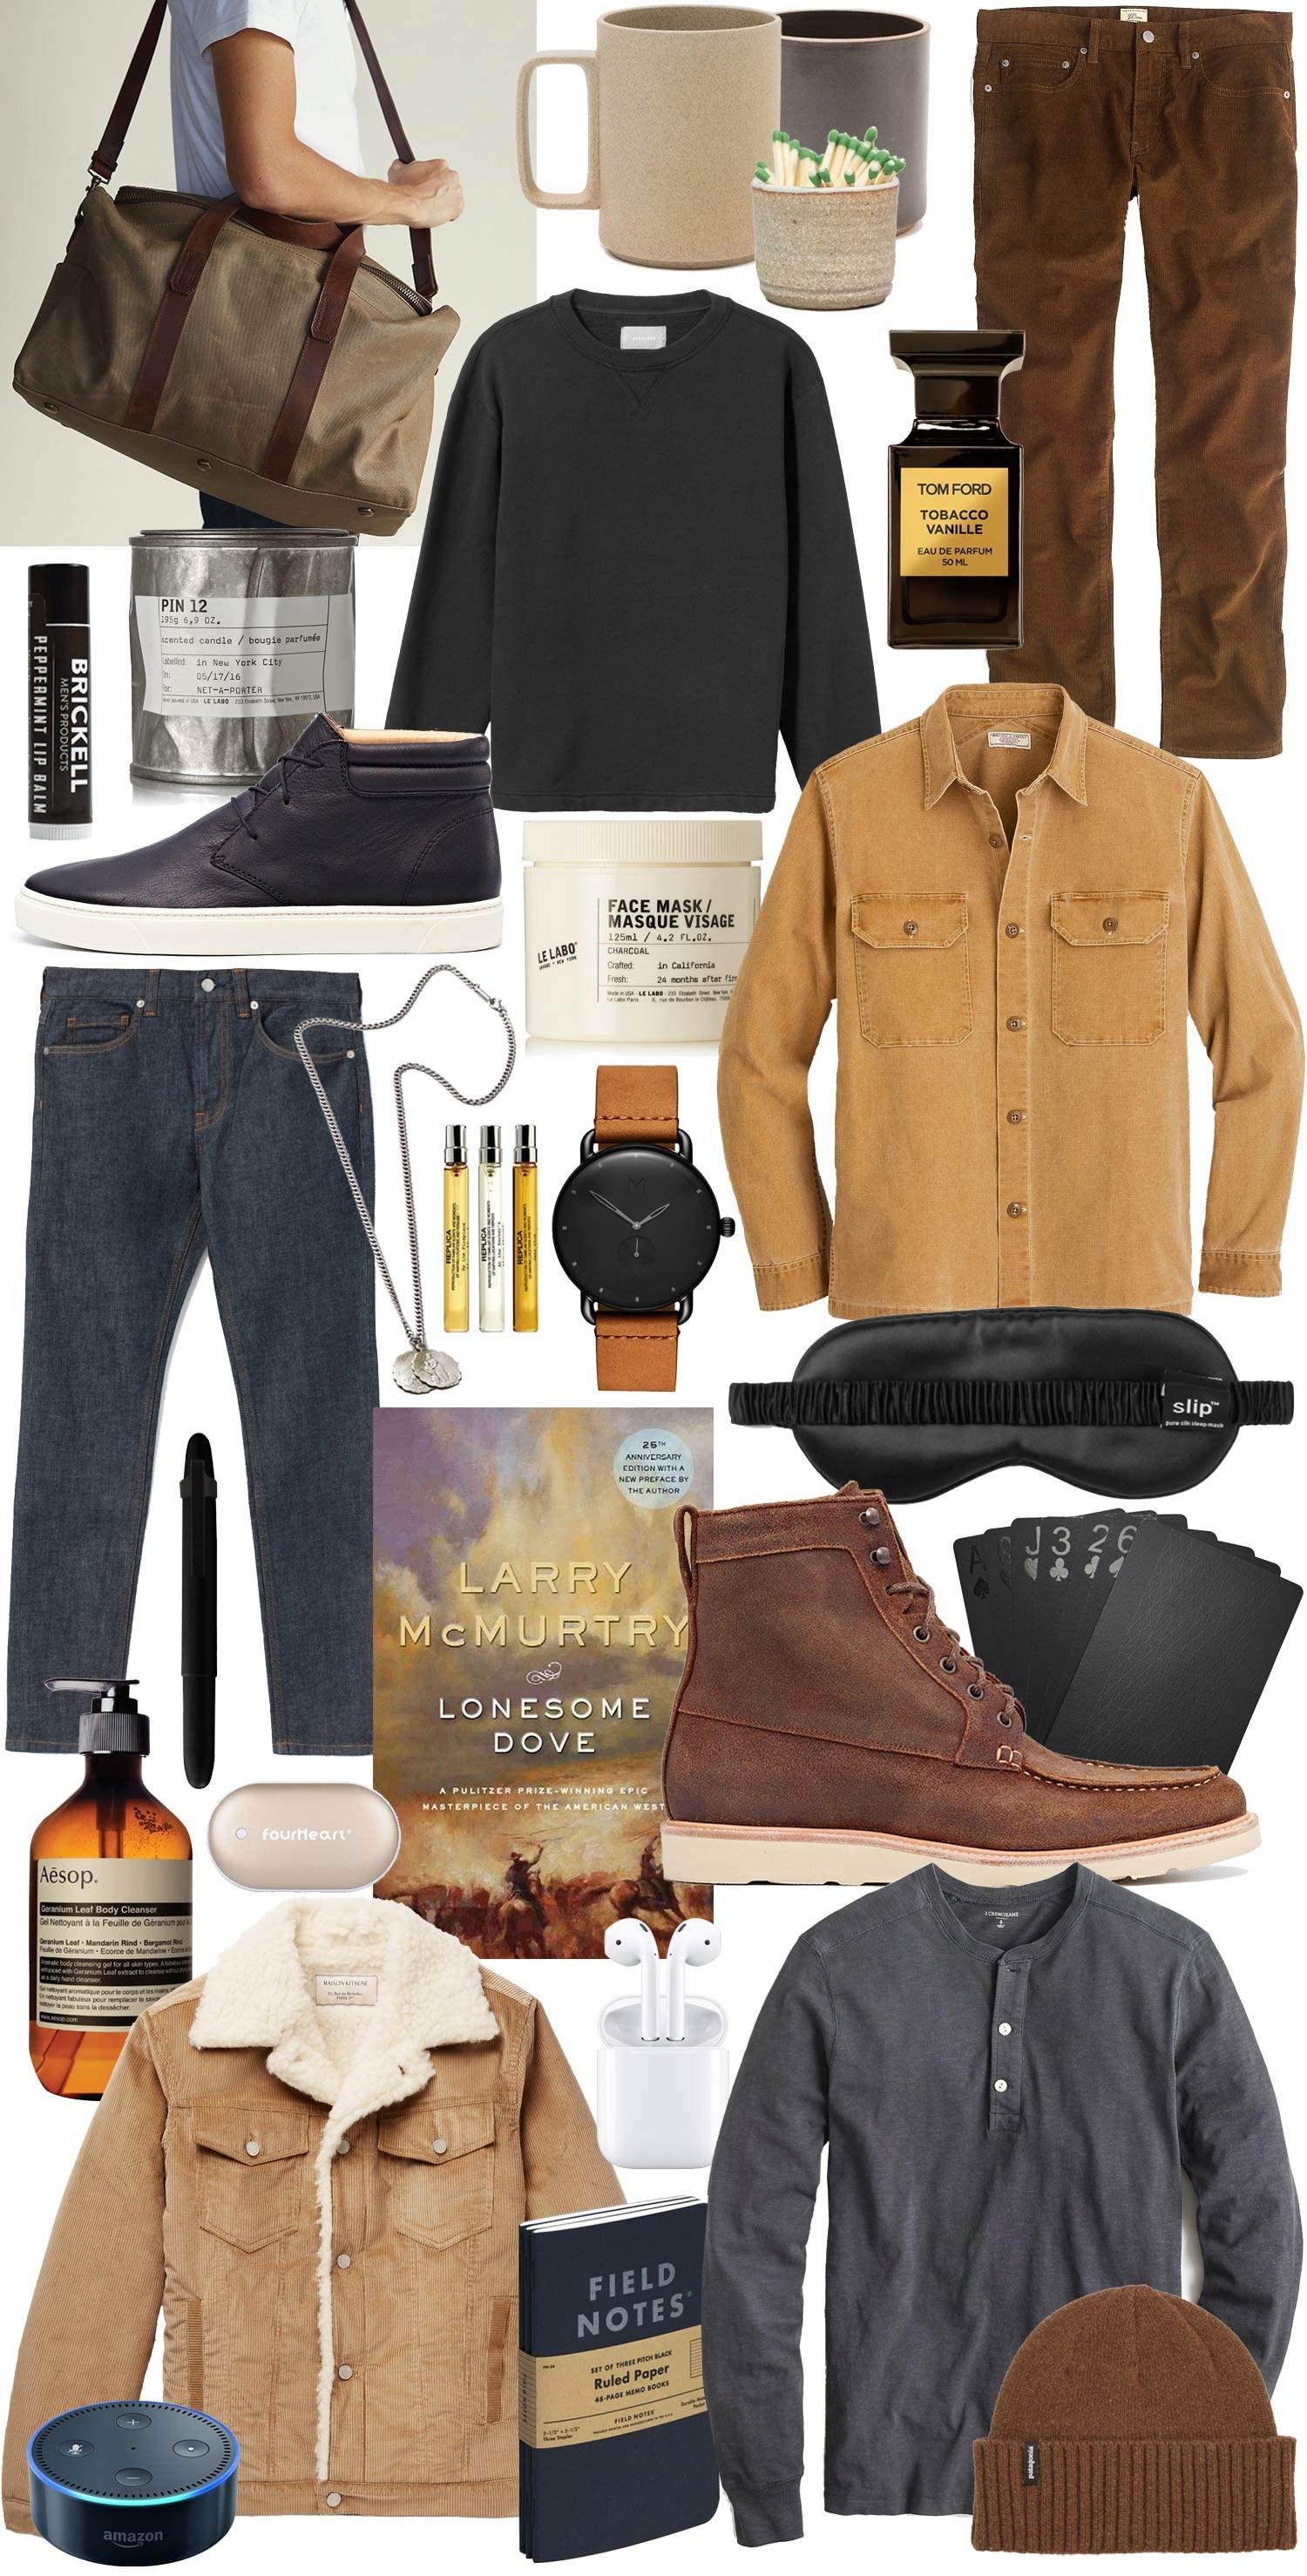 ba0526a810c3 Zack s Complete Men s Gift Guide — Dearly Bethany